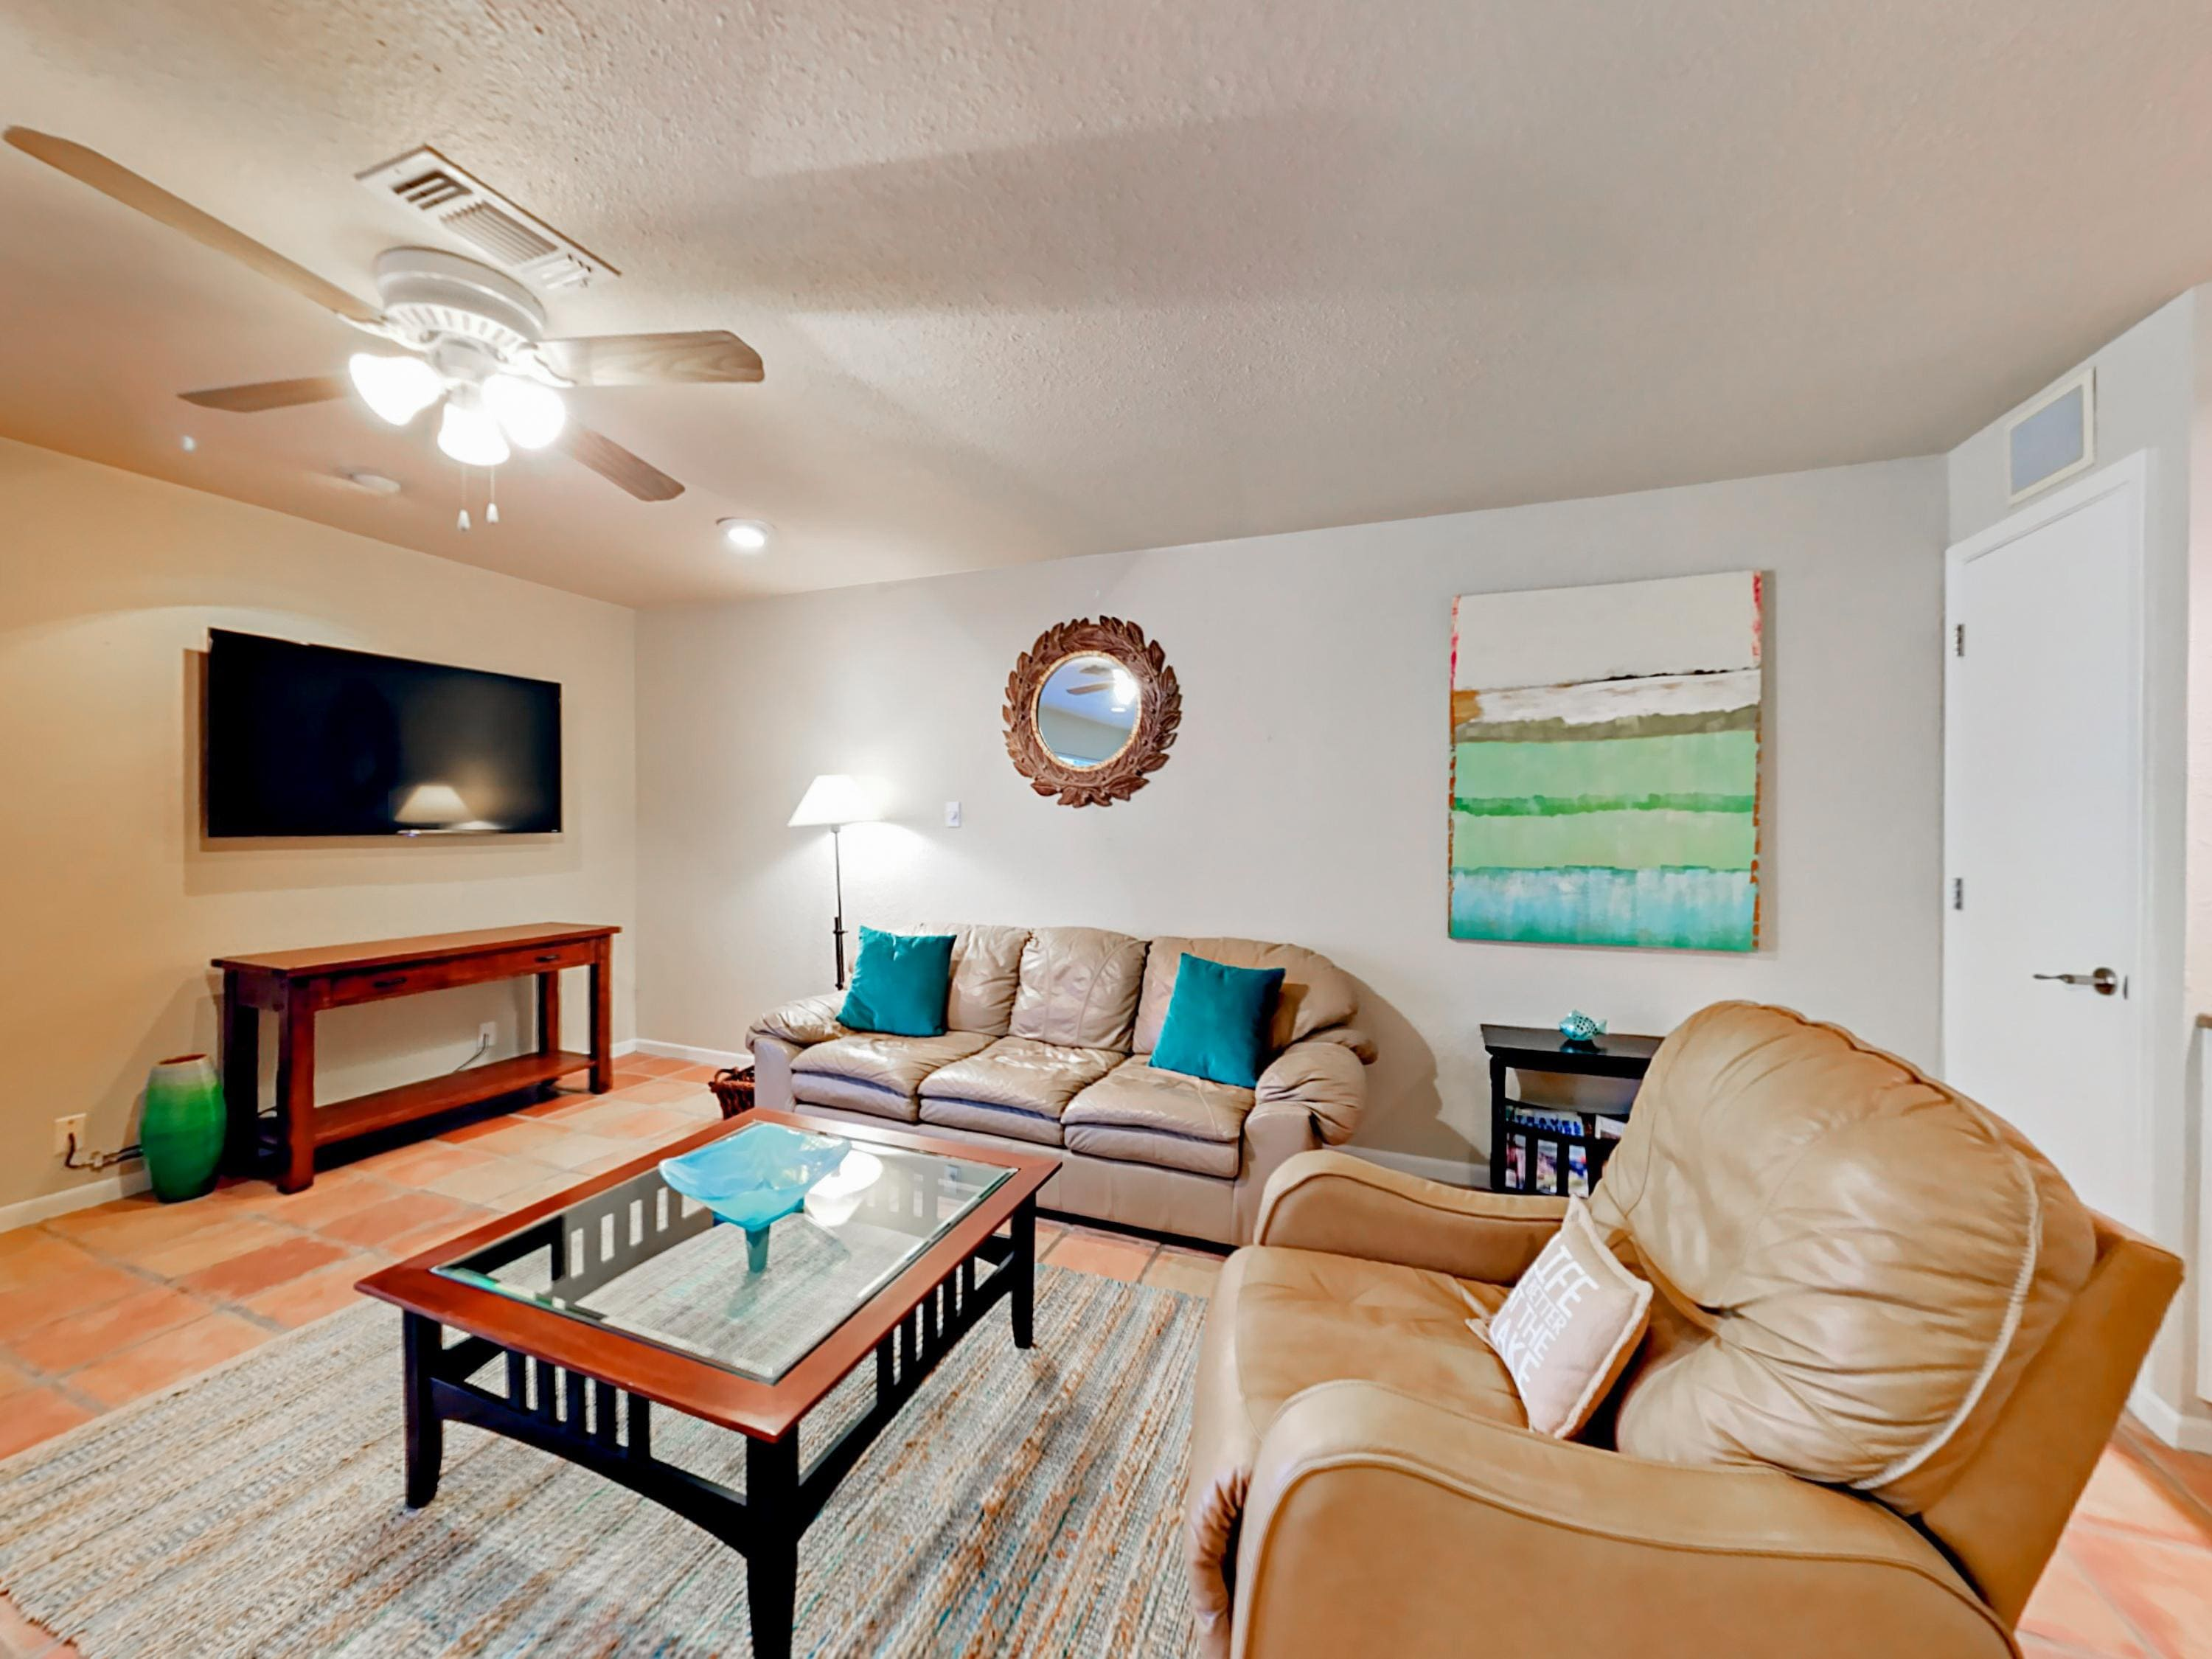 Spend time together in the open living area with a leather sofa, matching recliner, and flat screen TV. Complimentary Wi-Fi provided.